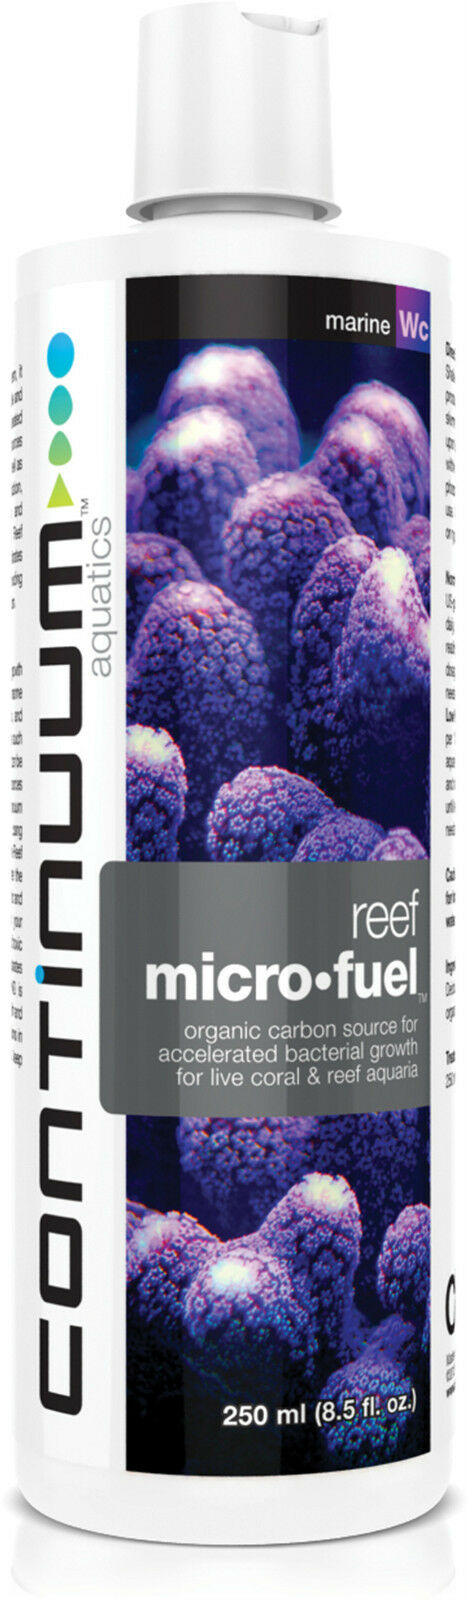 MICRO FUEL FOR CORALS IN REEF AQUARIA 500ml